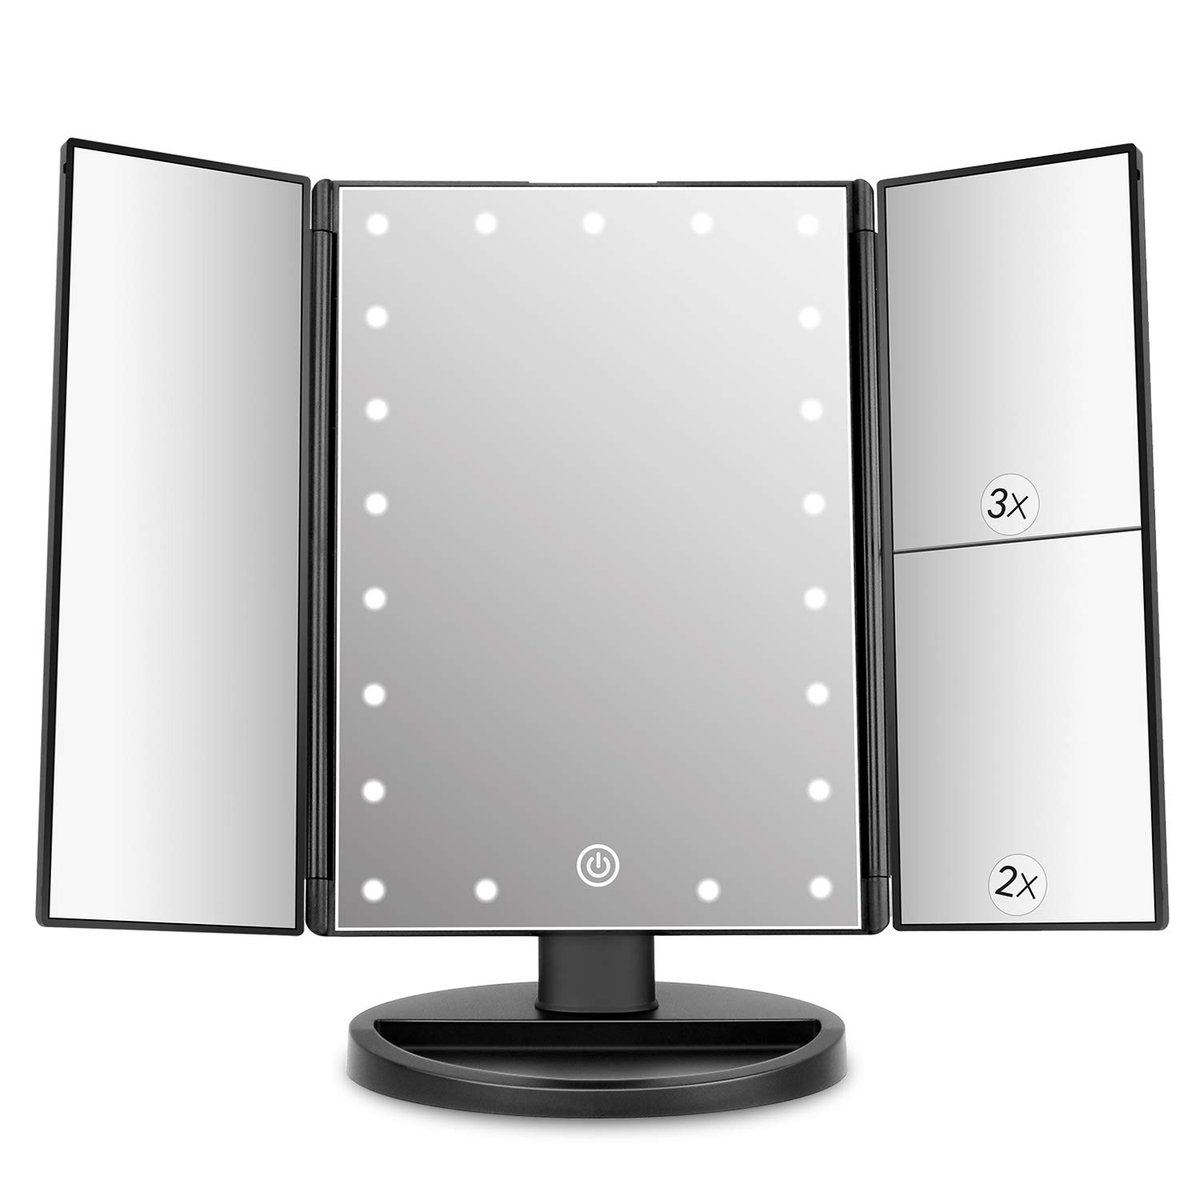 deweisn Trifold Lighted Vanity Mirror with 21 LED Lights,   save 15%